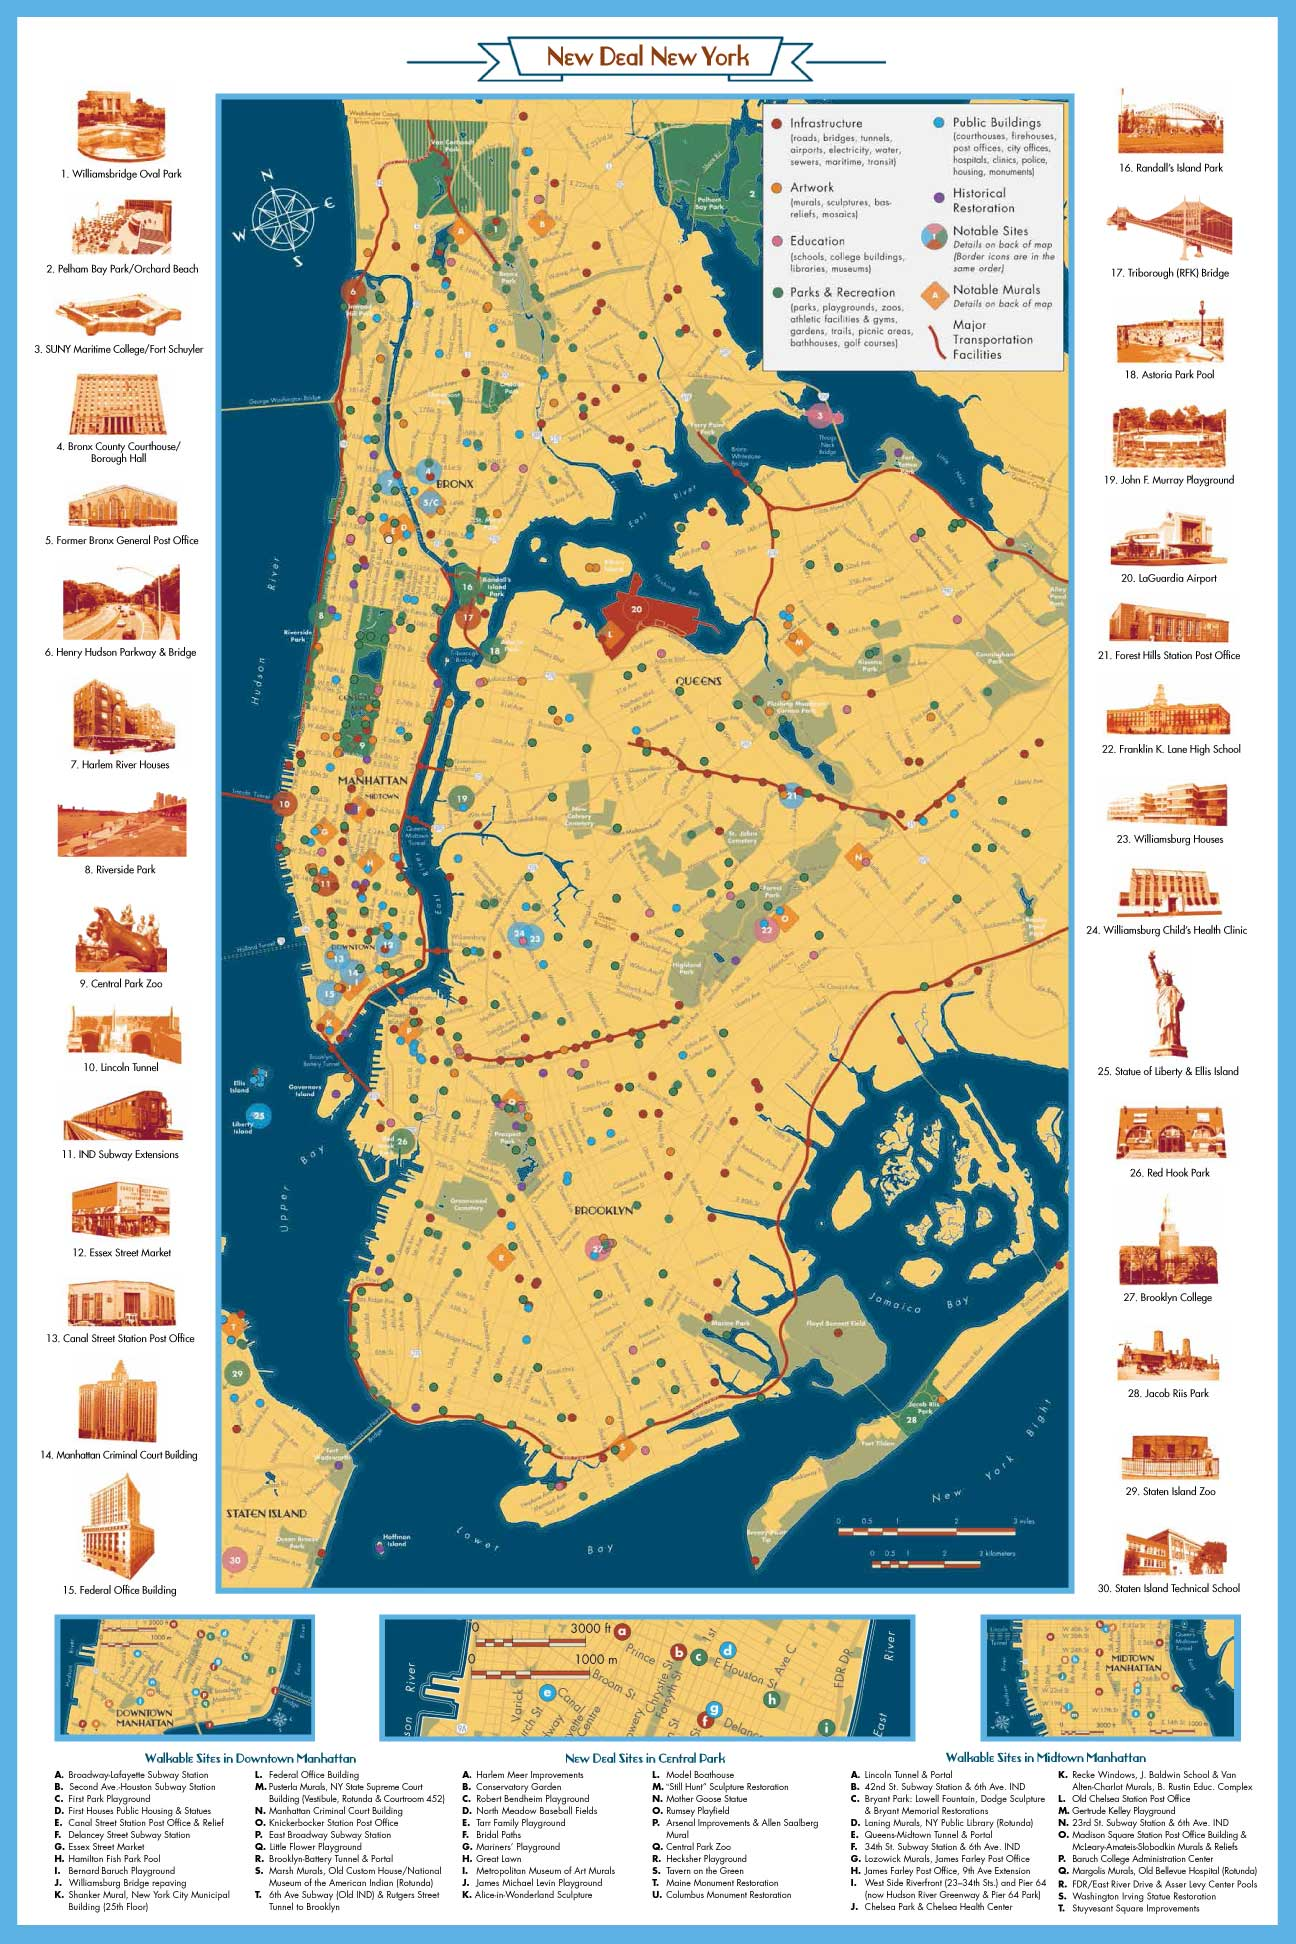 New York City Map And Guide Living New Deal - Nyc map